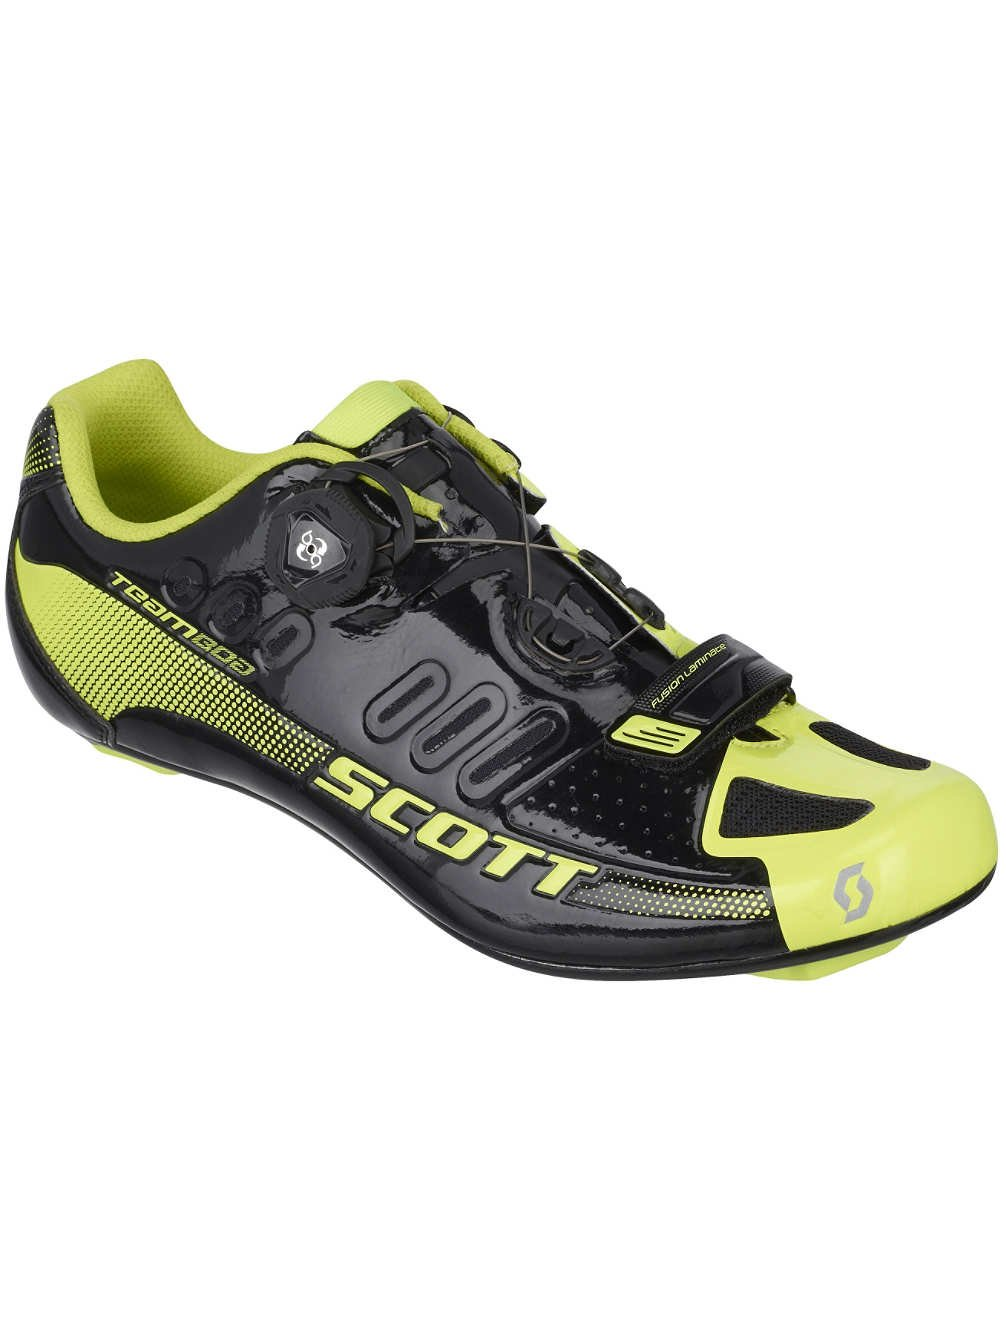 SCOTT スコット SHOE ROAD TEAM BOA black/neonyello 42 シューズ   B014I90UX0